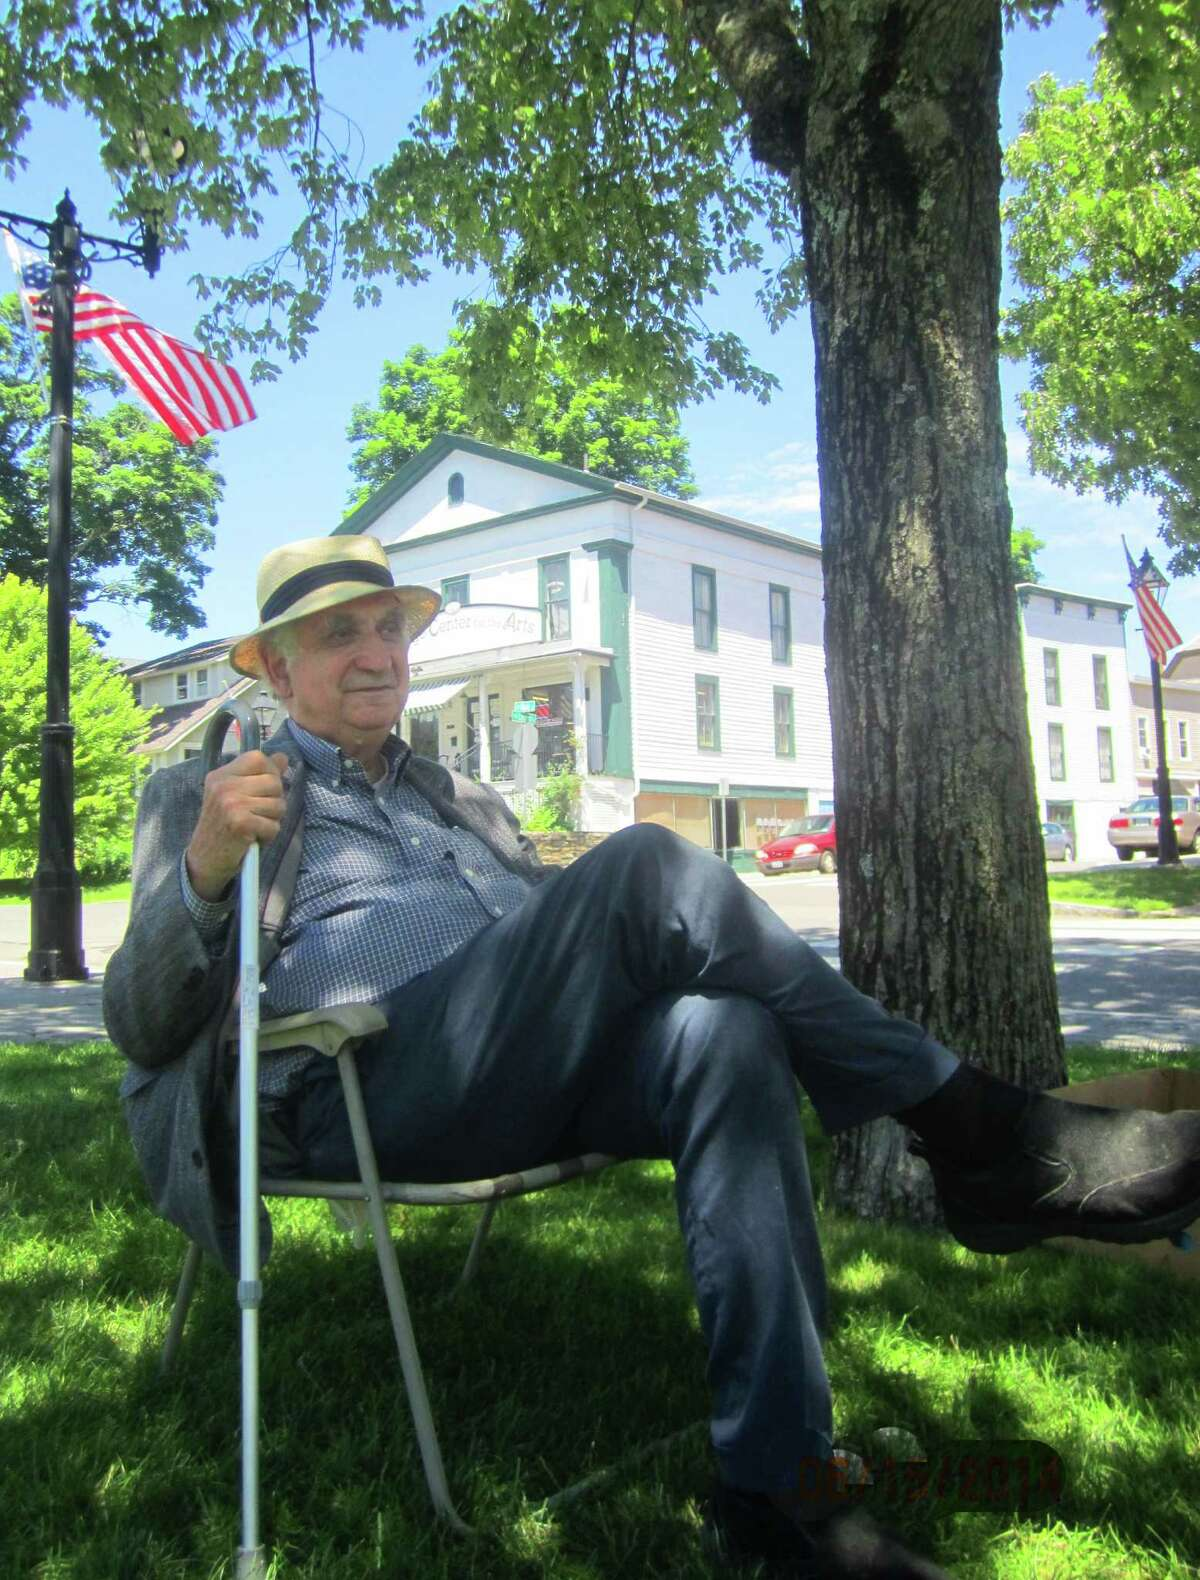 Richard Salter of Gaylordsville takes grateful advantage of a break between patrons to relax during the 19th annual Outdoor Art Festival, hosted June 14-15, 2014 on the Village Green by the New Milford Historical Society.